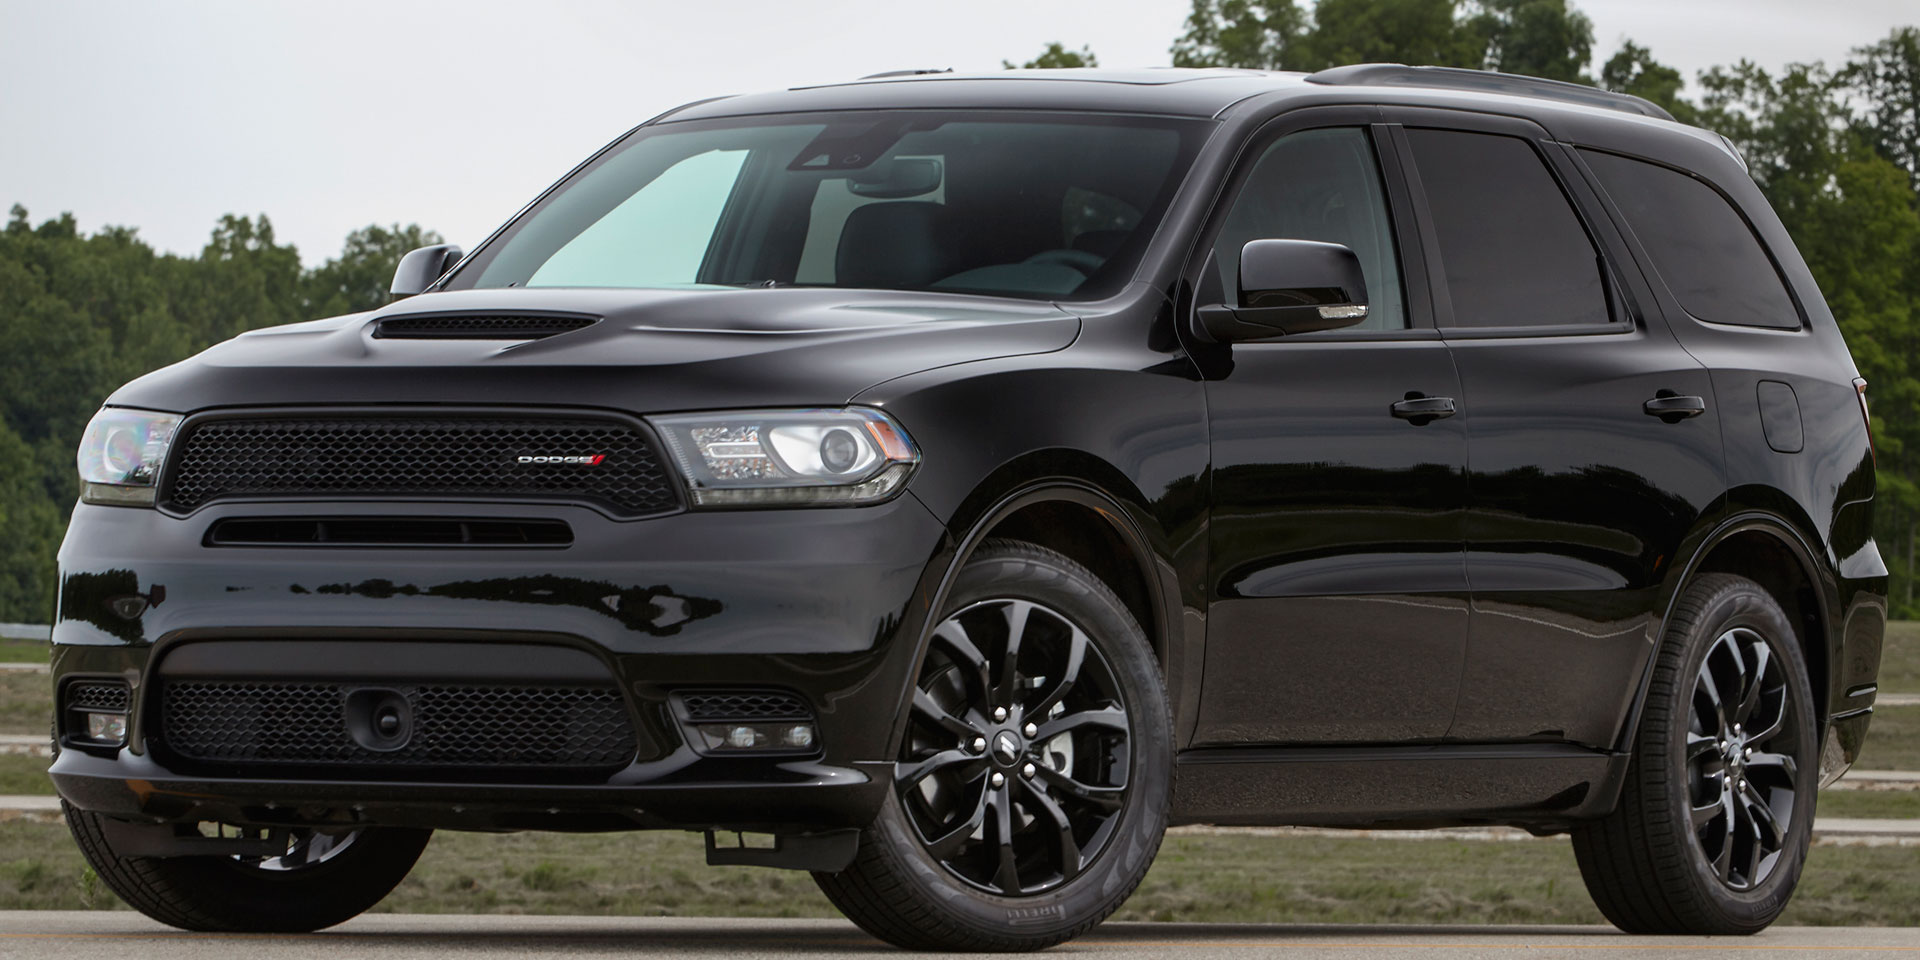 2020 Dodge Durango Vehicles On Display Chicago Auto Show